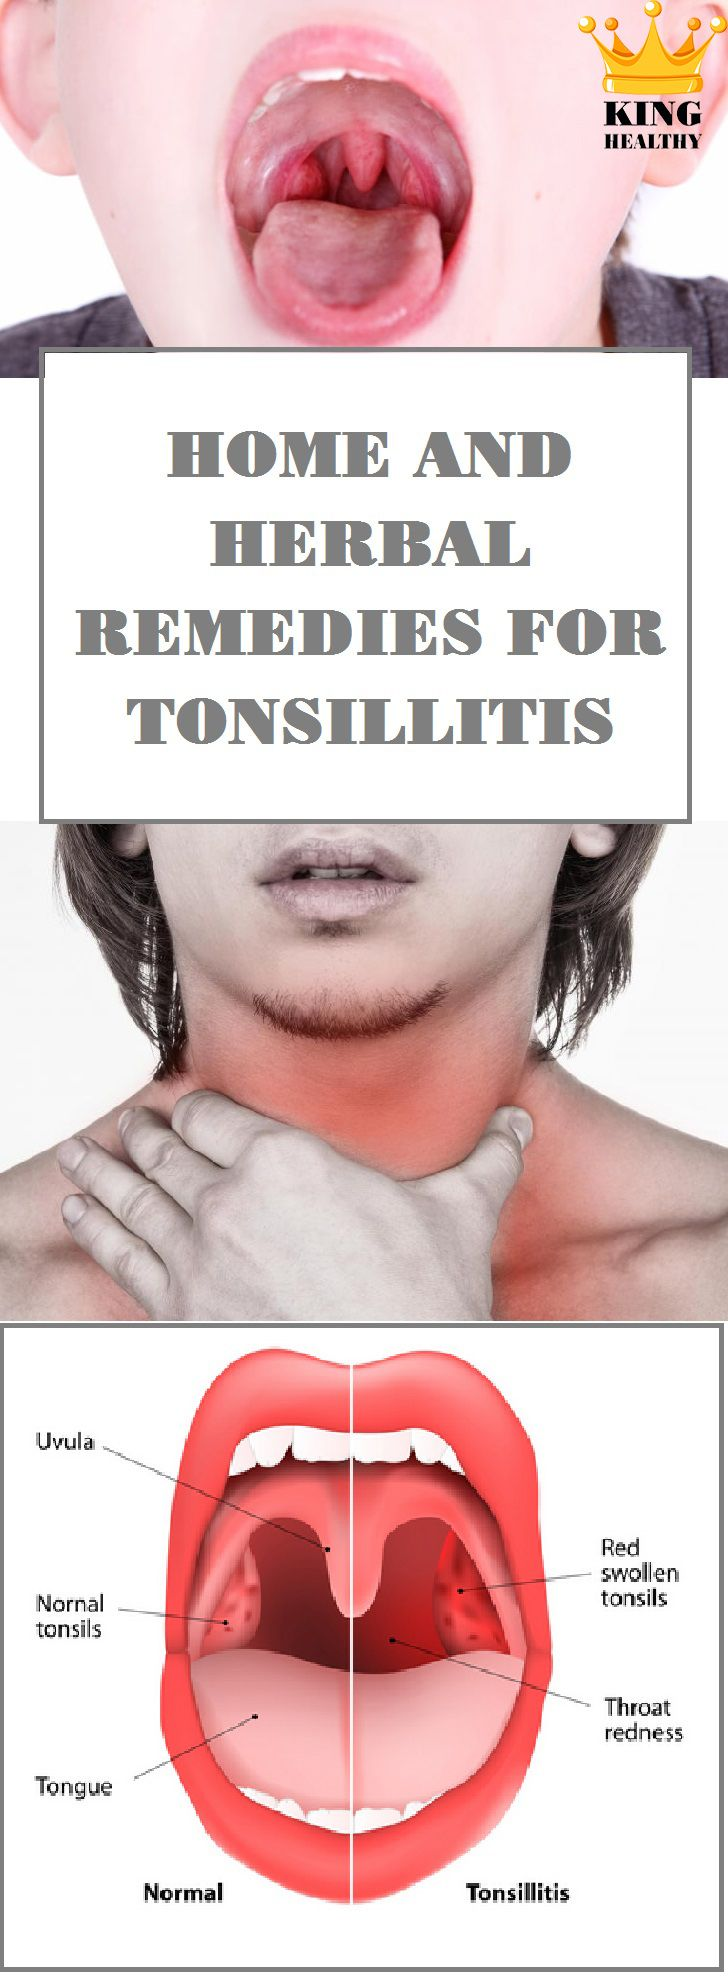 Home And Herbal Remedies For Tonsillitis - King Healthy Life